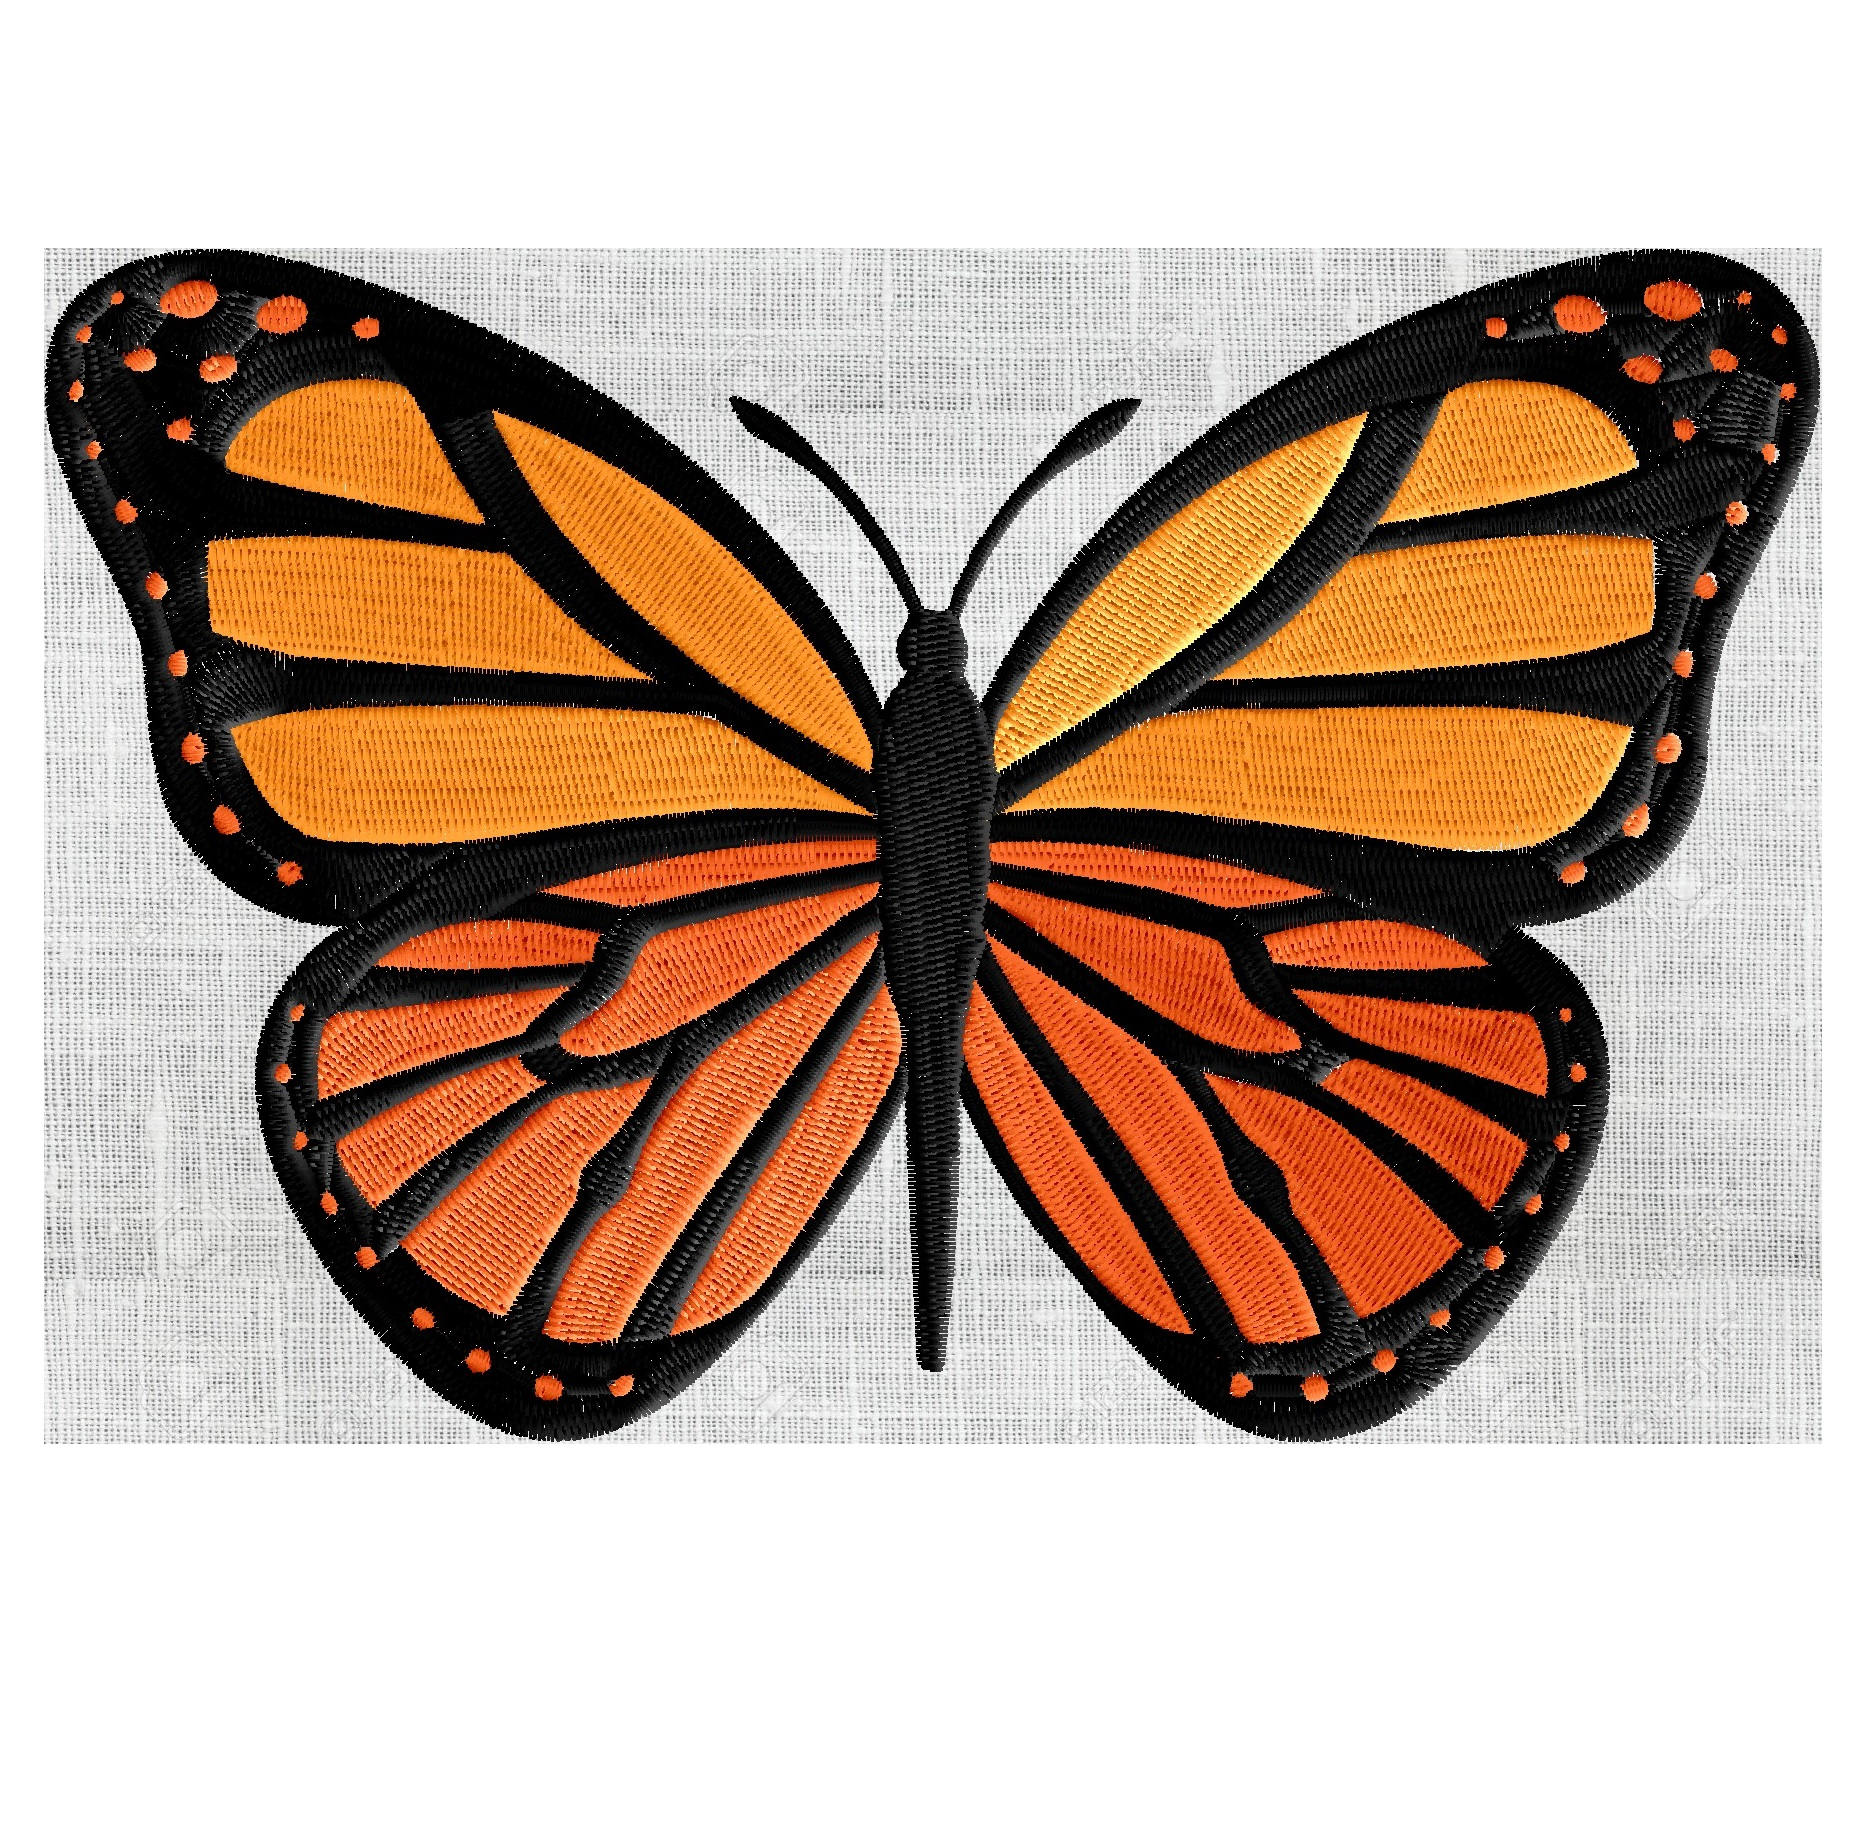 Machine Embroidery Design Butterfly embroidery design set of 5 butterfly embroidery design file